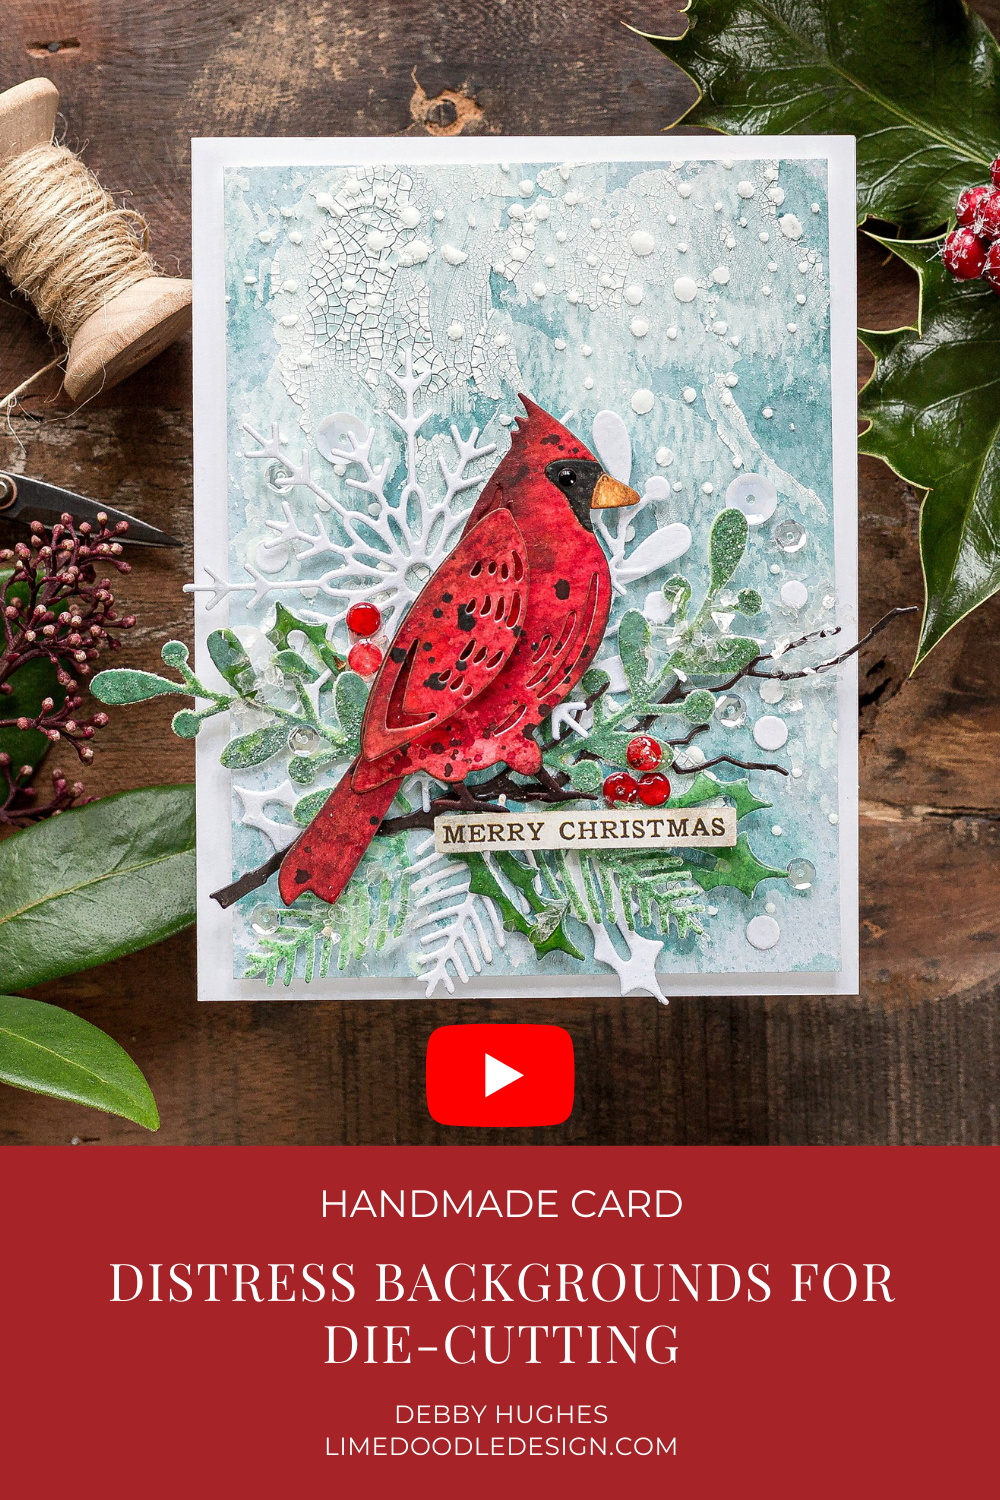 Video tutorial creating Tim Holtz Distress backgrounds for die-cutting by Debby Hughes using supplies from Tim Holtz and Simon Says Stamp #handmadecards #cardmaking #cardmakingideas #cardmakingtechniques  #cardmakingtutorials #handmadecardideas #handmadechristmas #christmascrafts #navidad #noel #merrychristmas #diychristmas #christmascards #christmascardideas #simonsaysstamp